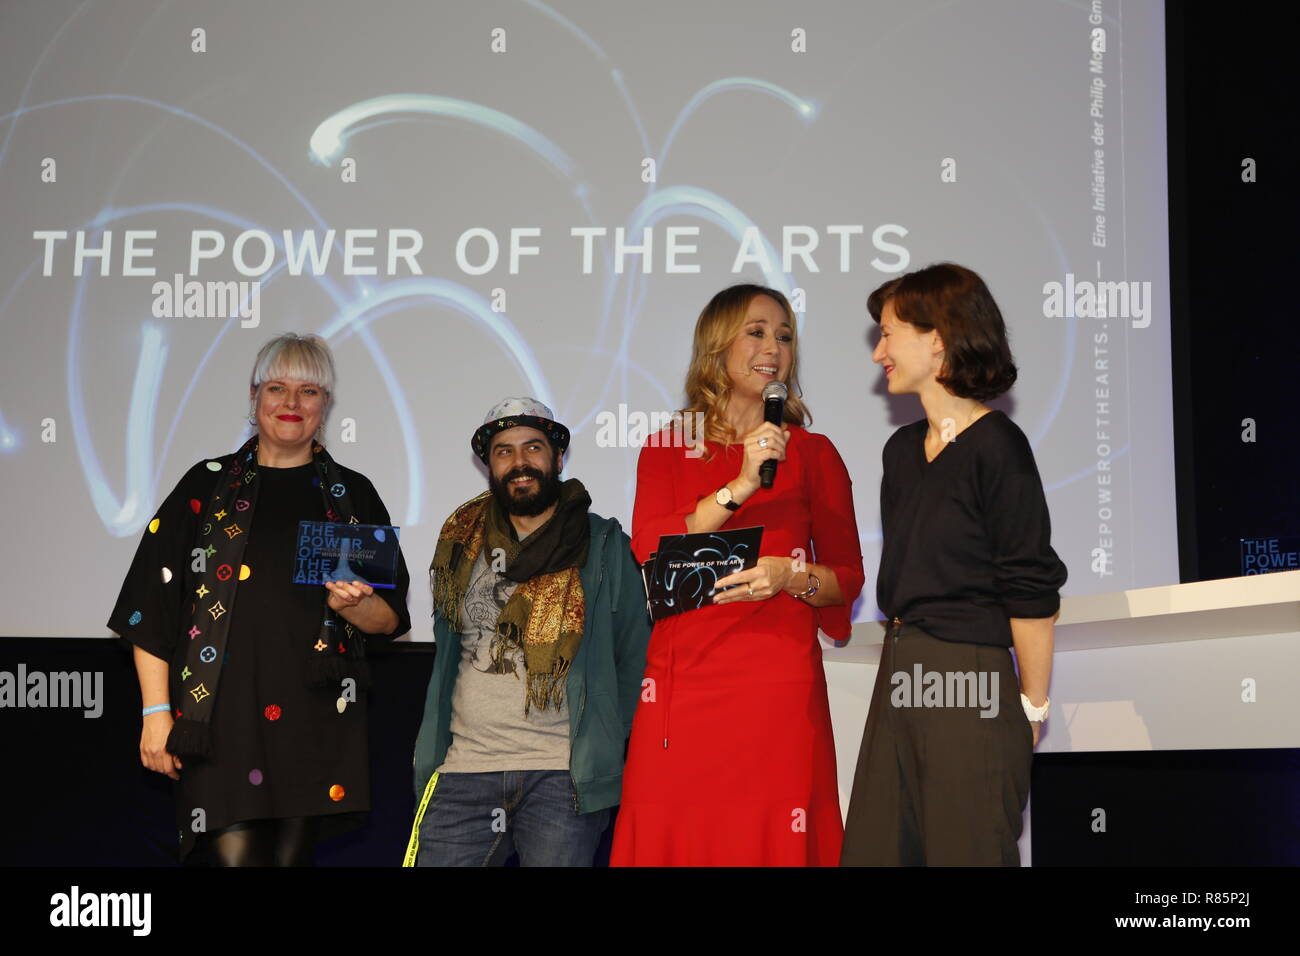 Berlin, Germany. 12th Dec 2018. The winners Migrantpolitan (Hamburg) and Petra Gute (second from right). On the 12th of December the solemn award ceremony of the initiative 'The Power of the Arts' takes place for the second time in Berlin. With 200,000 euros it is the highest endowed prize for cultural participation in Germany.  Migrantpolitan on Kampnagel and the literary portal Weiter Schreiben. Credit: SAO Struck/Alamy Live News - Stock Image